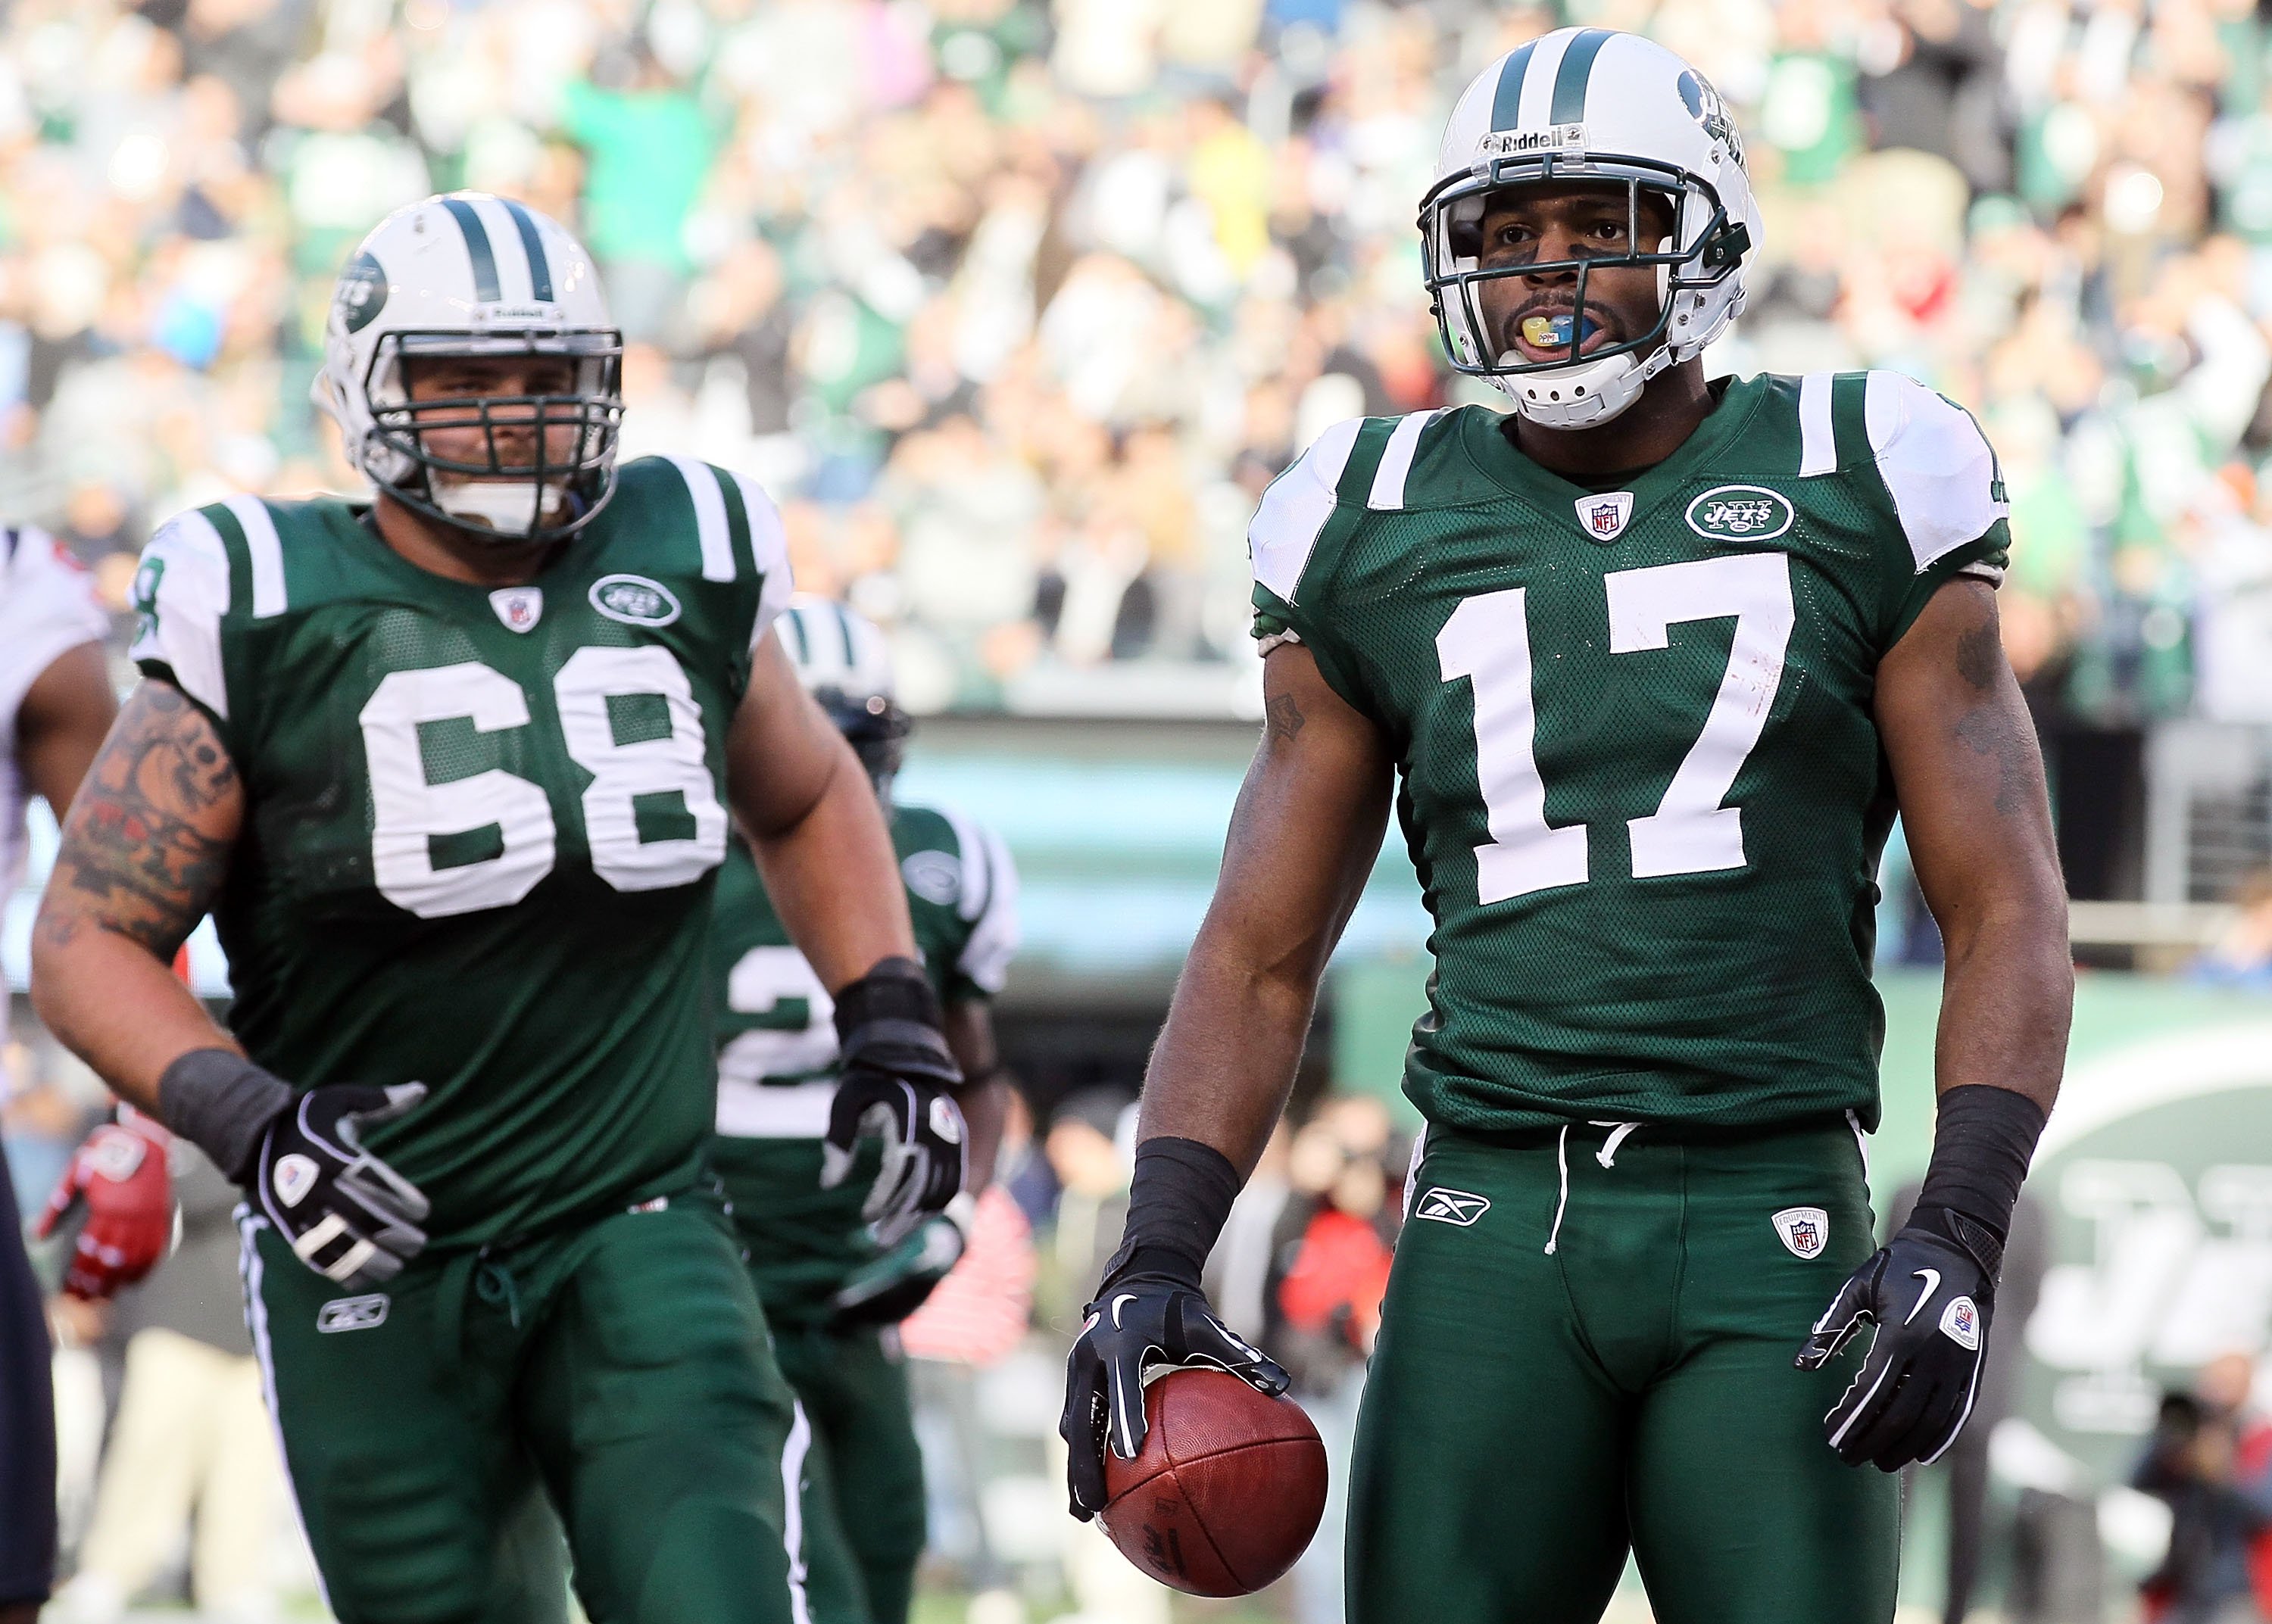 EAST RUTHERFORD, NJ - NOVEMBER 21: Braylon Edwards #17 of the New York Jets looks on after scoring a touchdown agianst the Houston Texans as teammate Matt Saluson #68 looks on November 21, 2010 at the New Meadowlands Stadium in East Rutherford, New Jersey